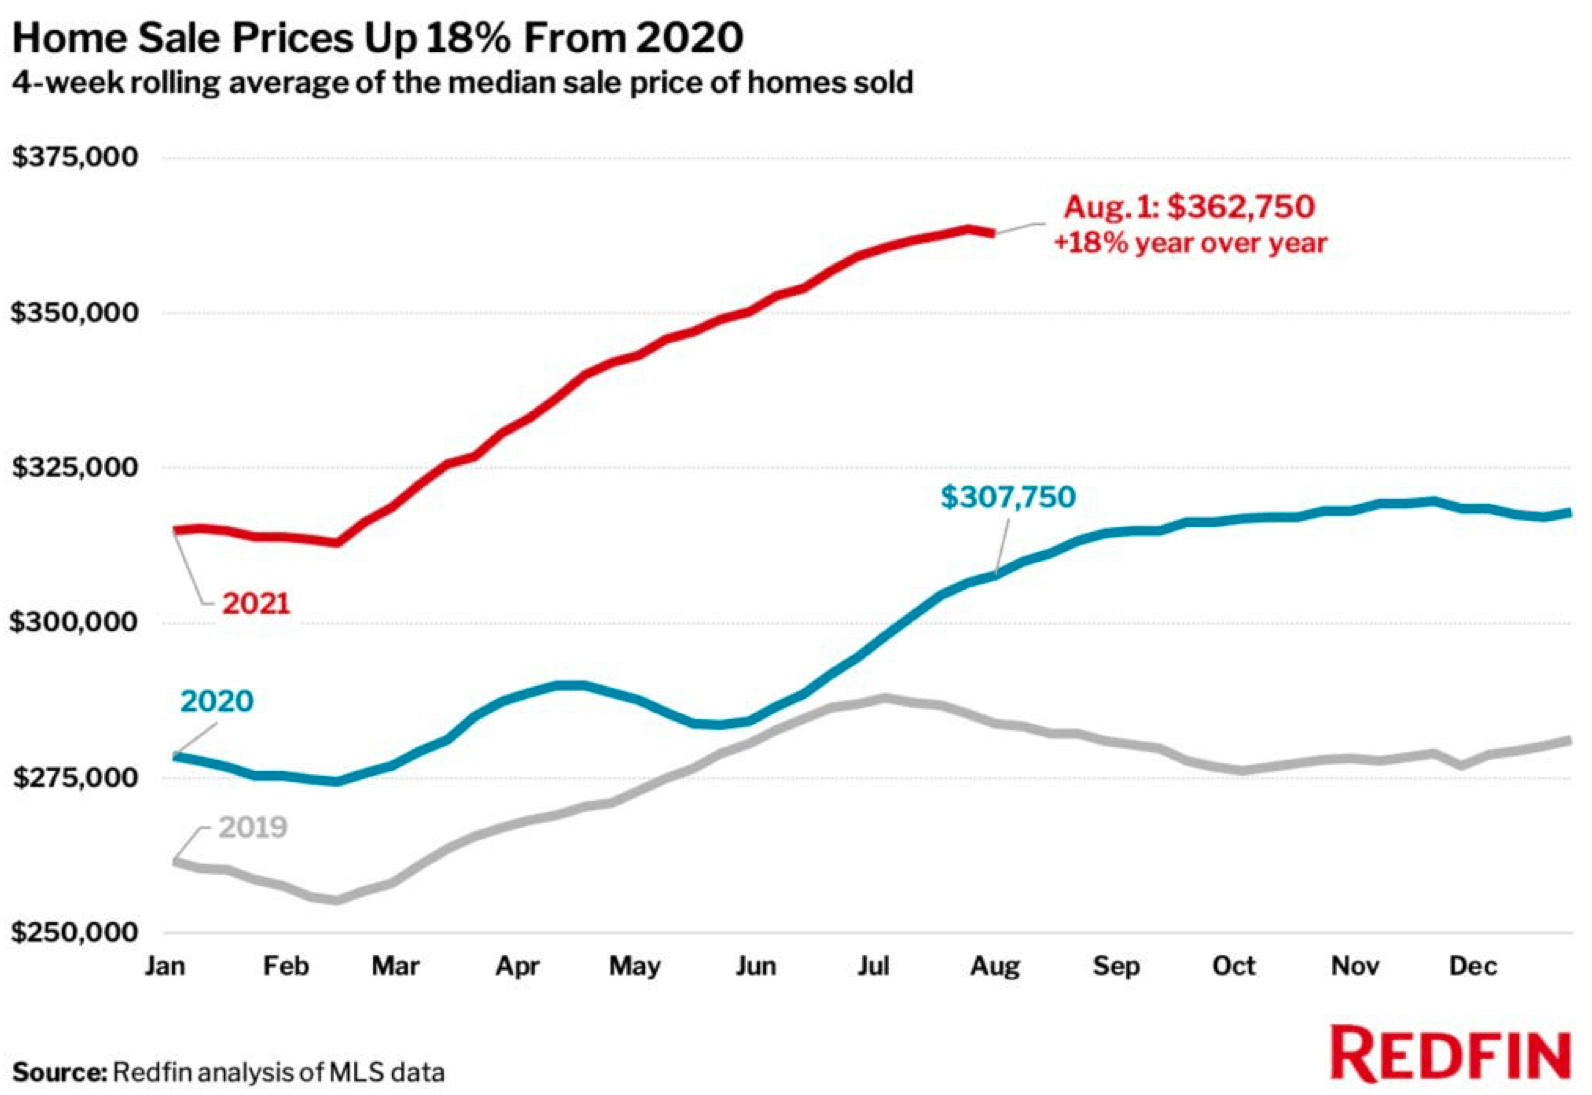 Home sale prices up 18% in 2021 from 2020